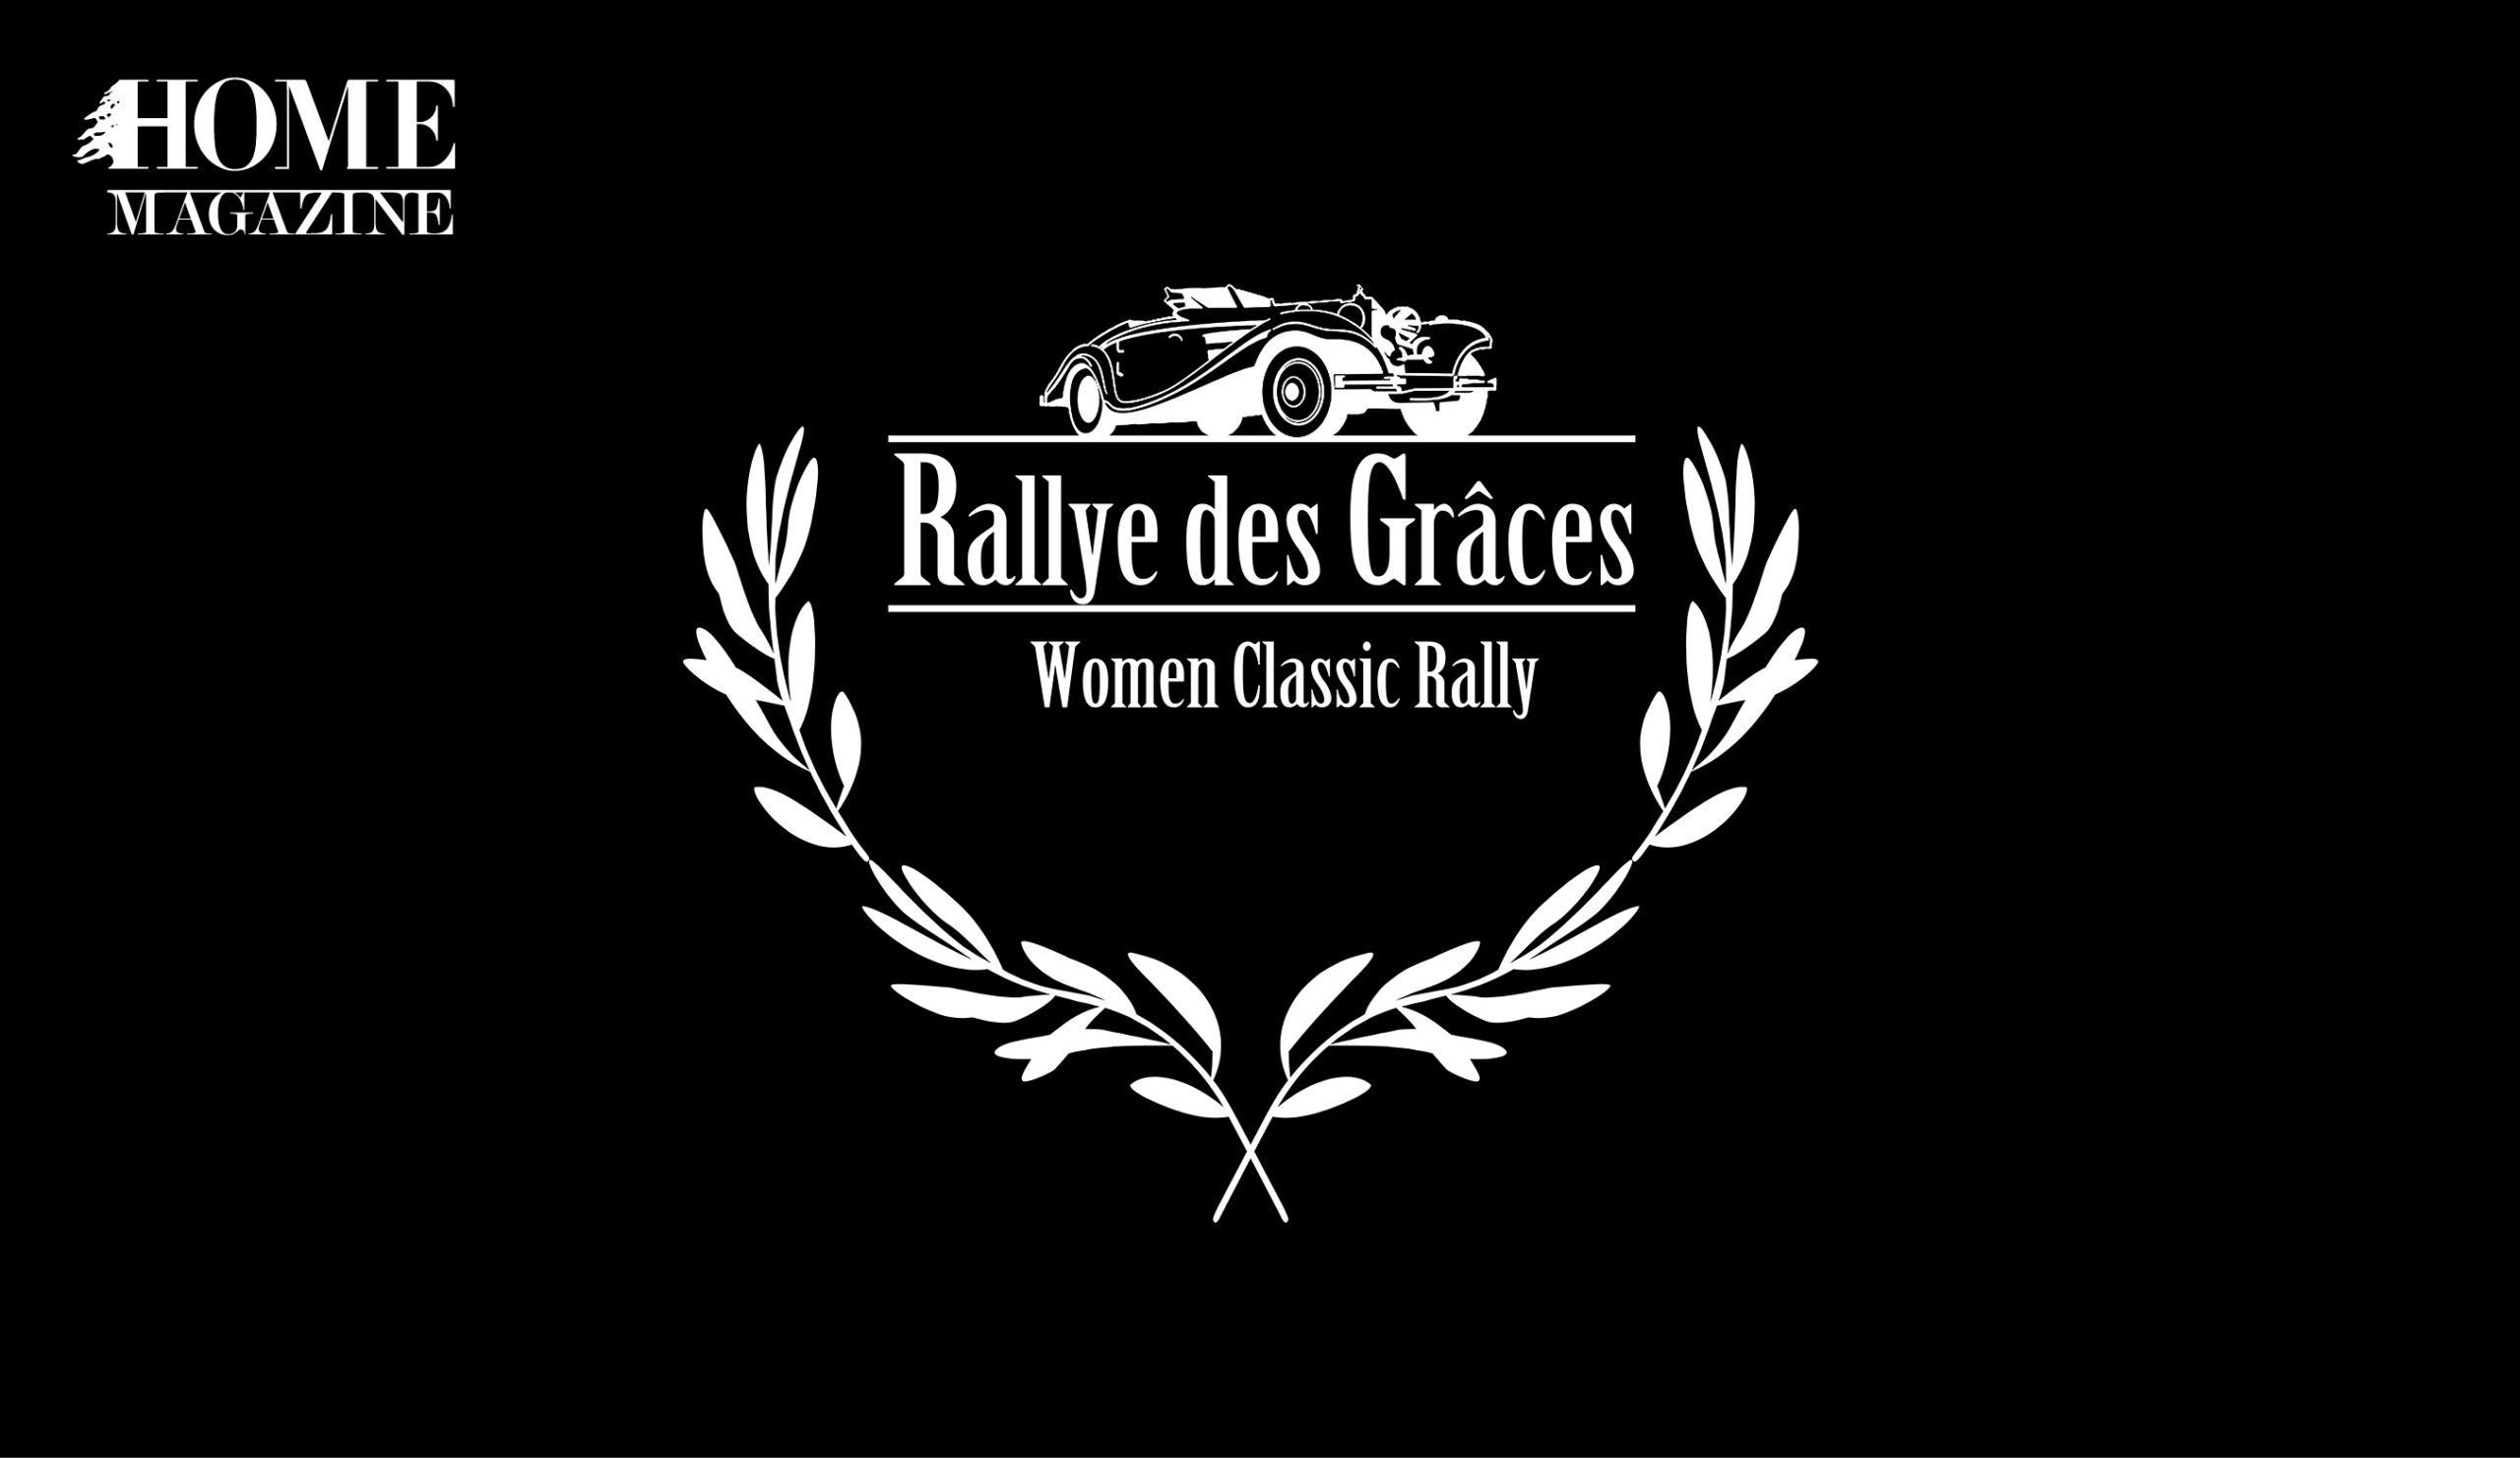 Rallye des Grâces: The Race for Economic Empowerment